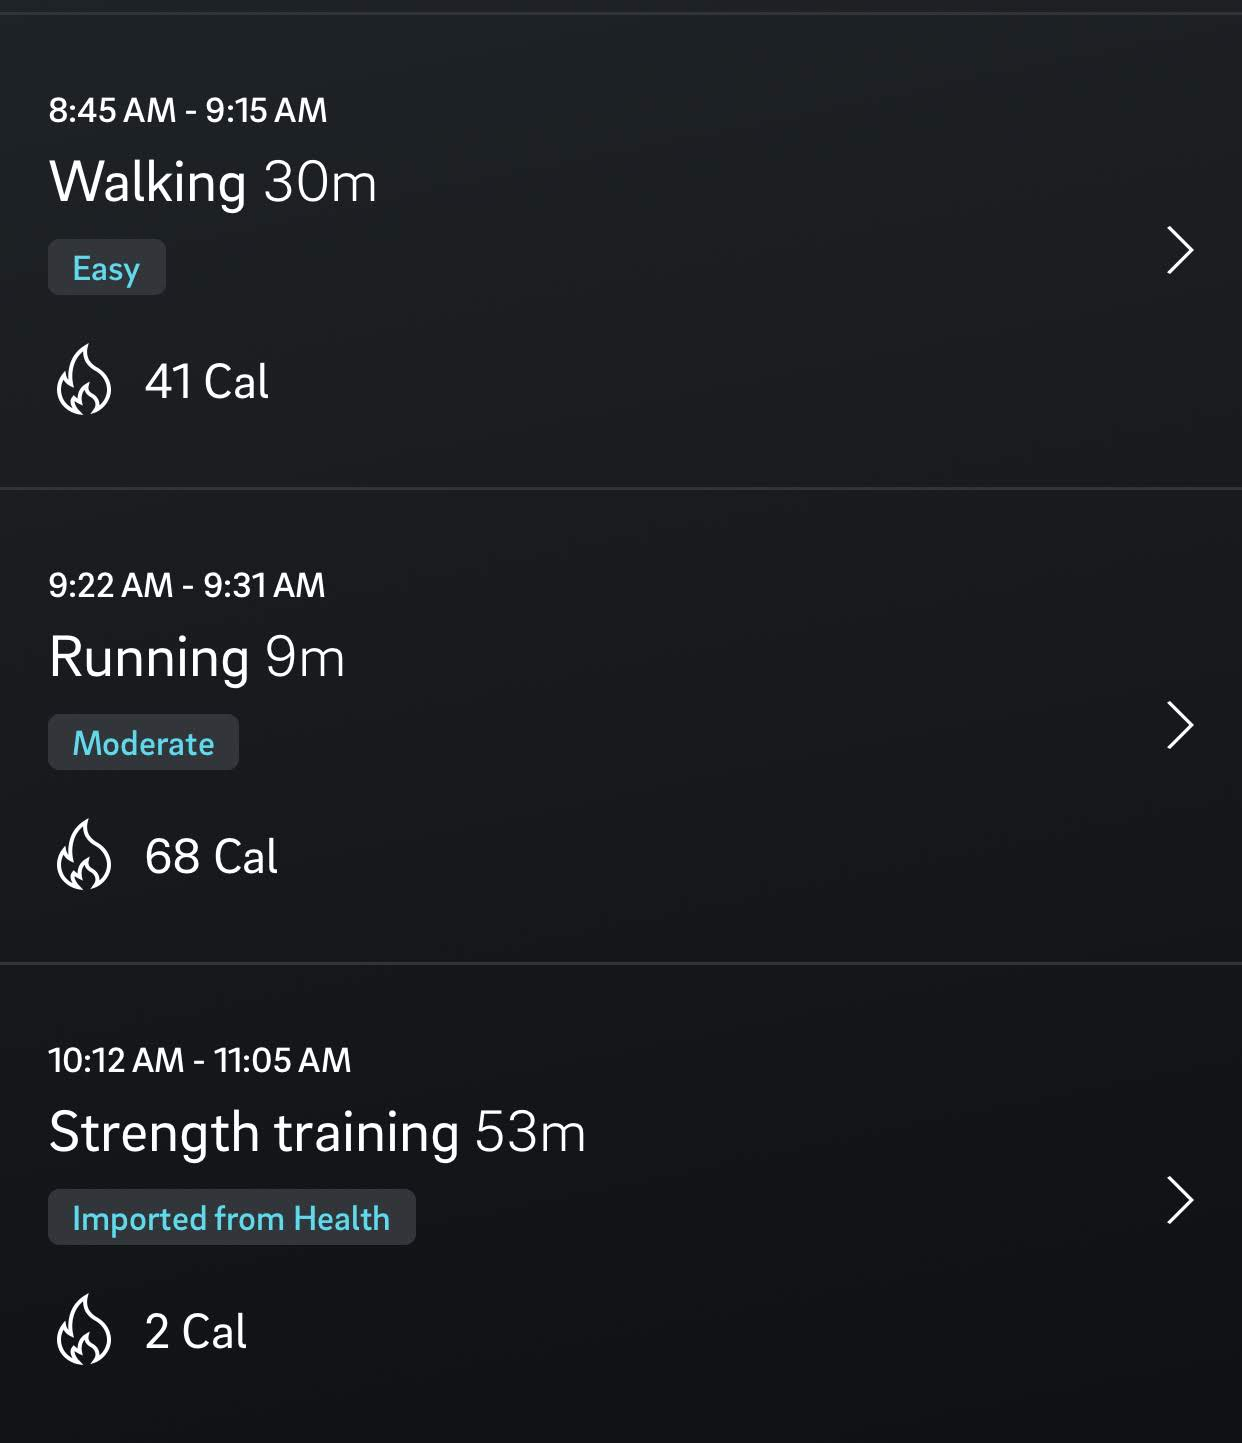 I have to manually enter any workouts into the Oura app, and I'm sure I burned more than 2 calories breathing during my 53 minute strength training workout. It was hard, I swear!